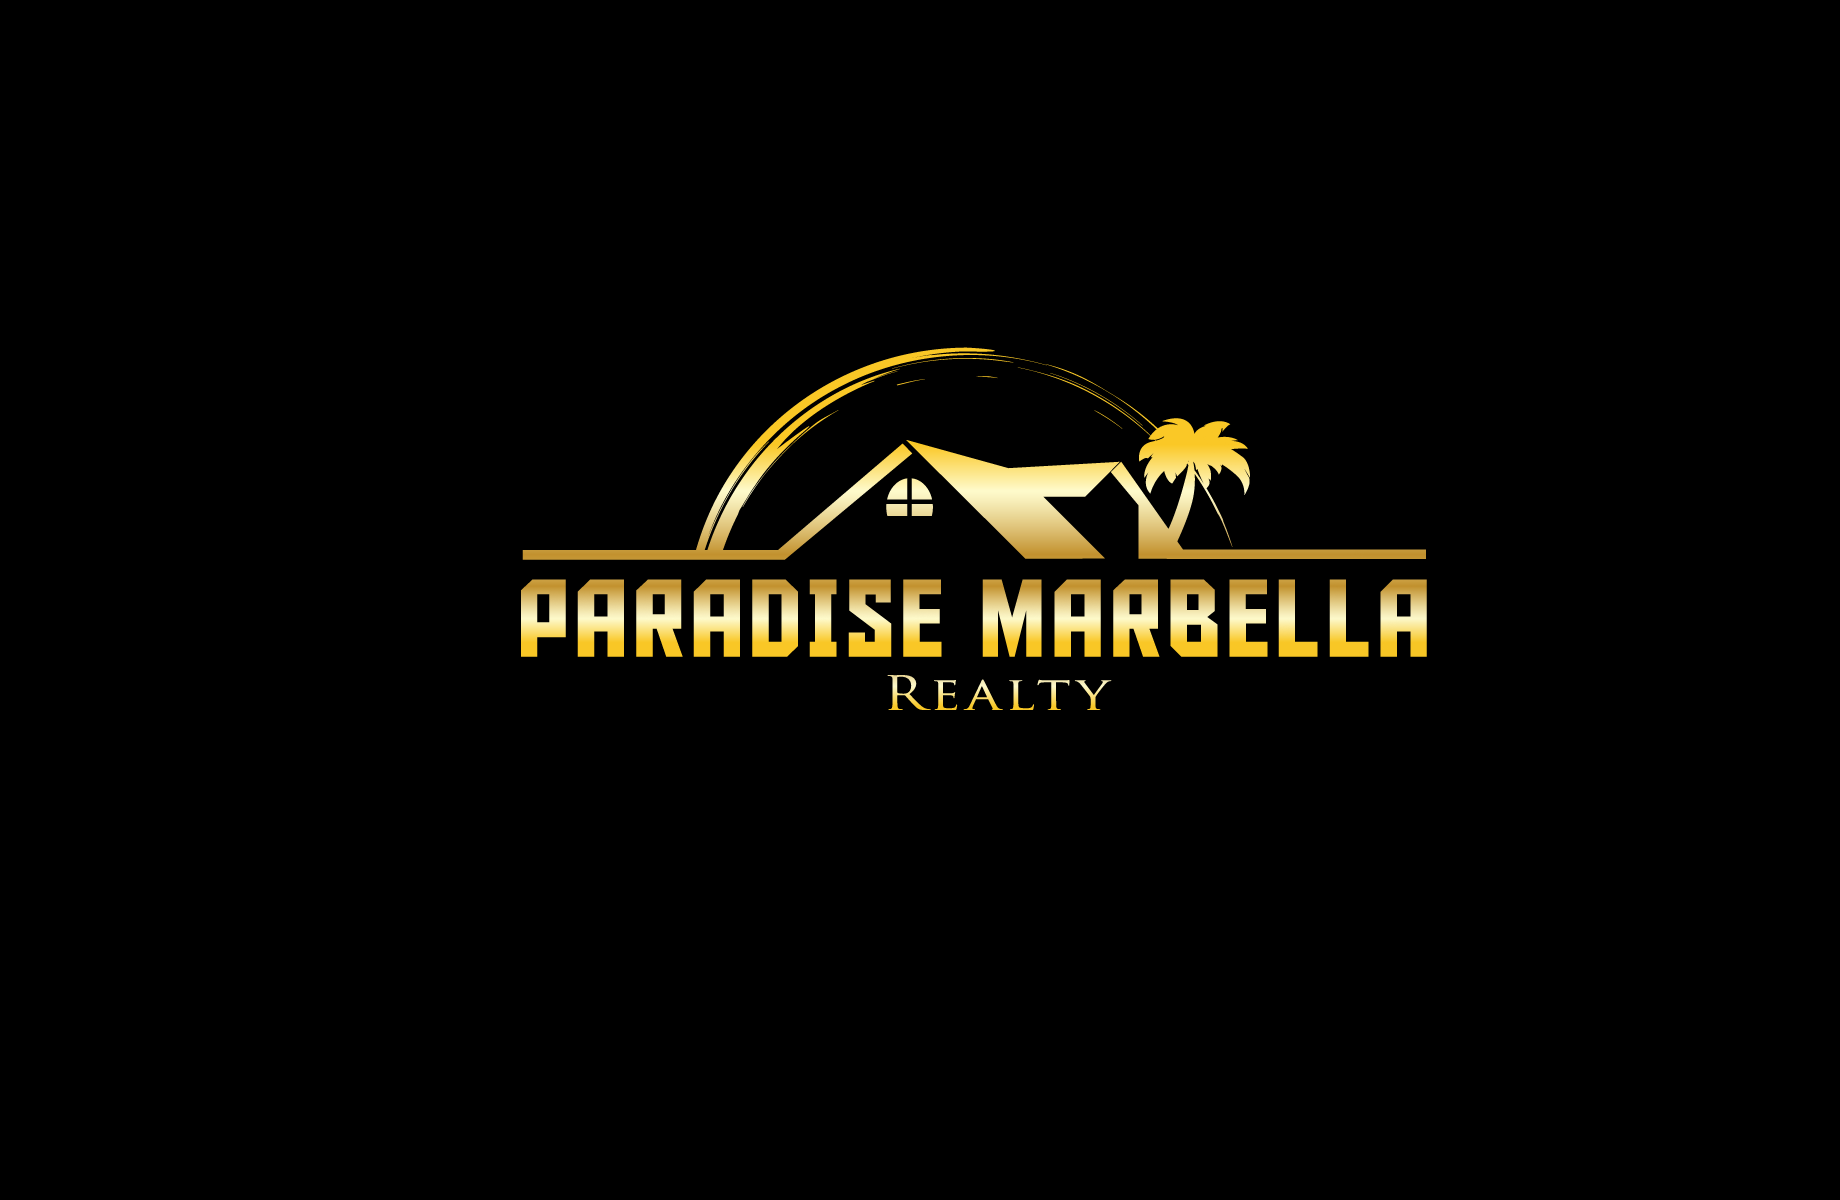 Logo Design by Jan Chua - Entry No. 90 in the Logo Design Contest Captivating Logo Design for Paradise Marbella Realty.